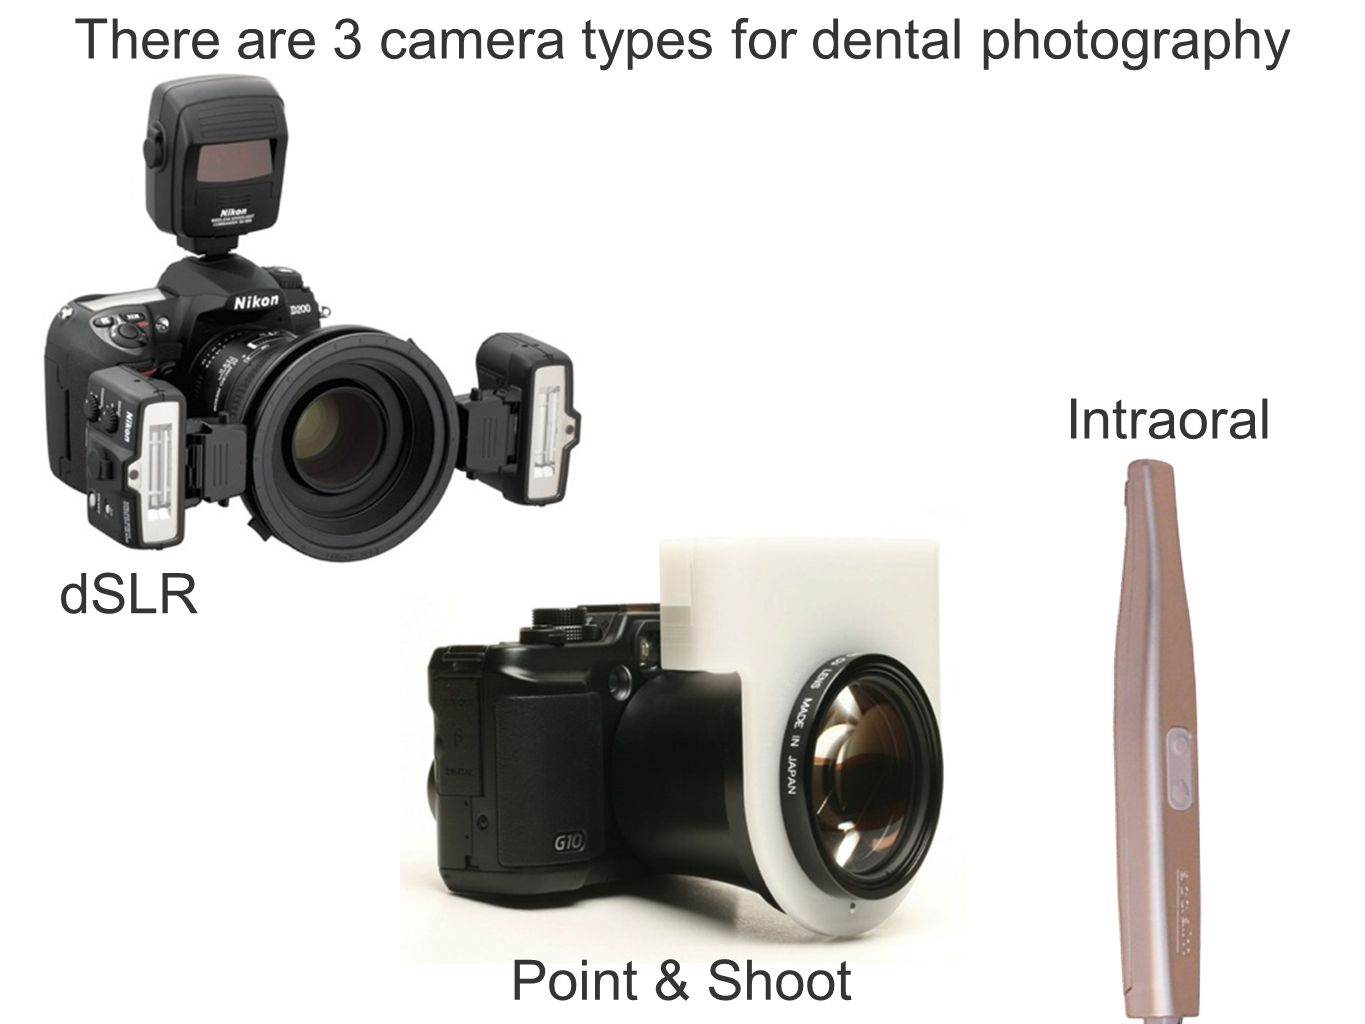 There are 3 camera types for dental photography